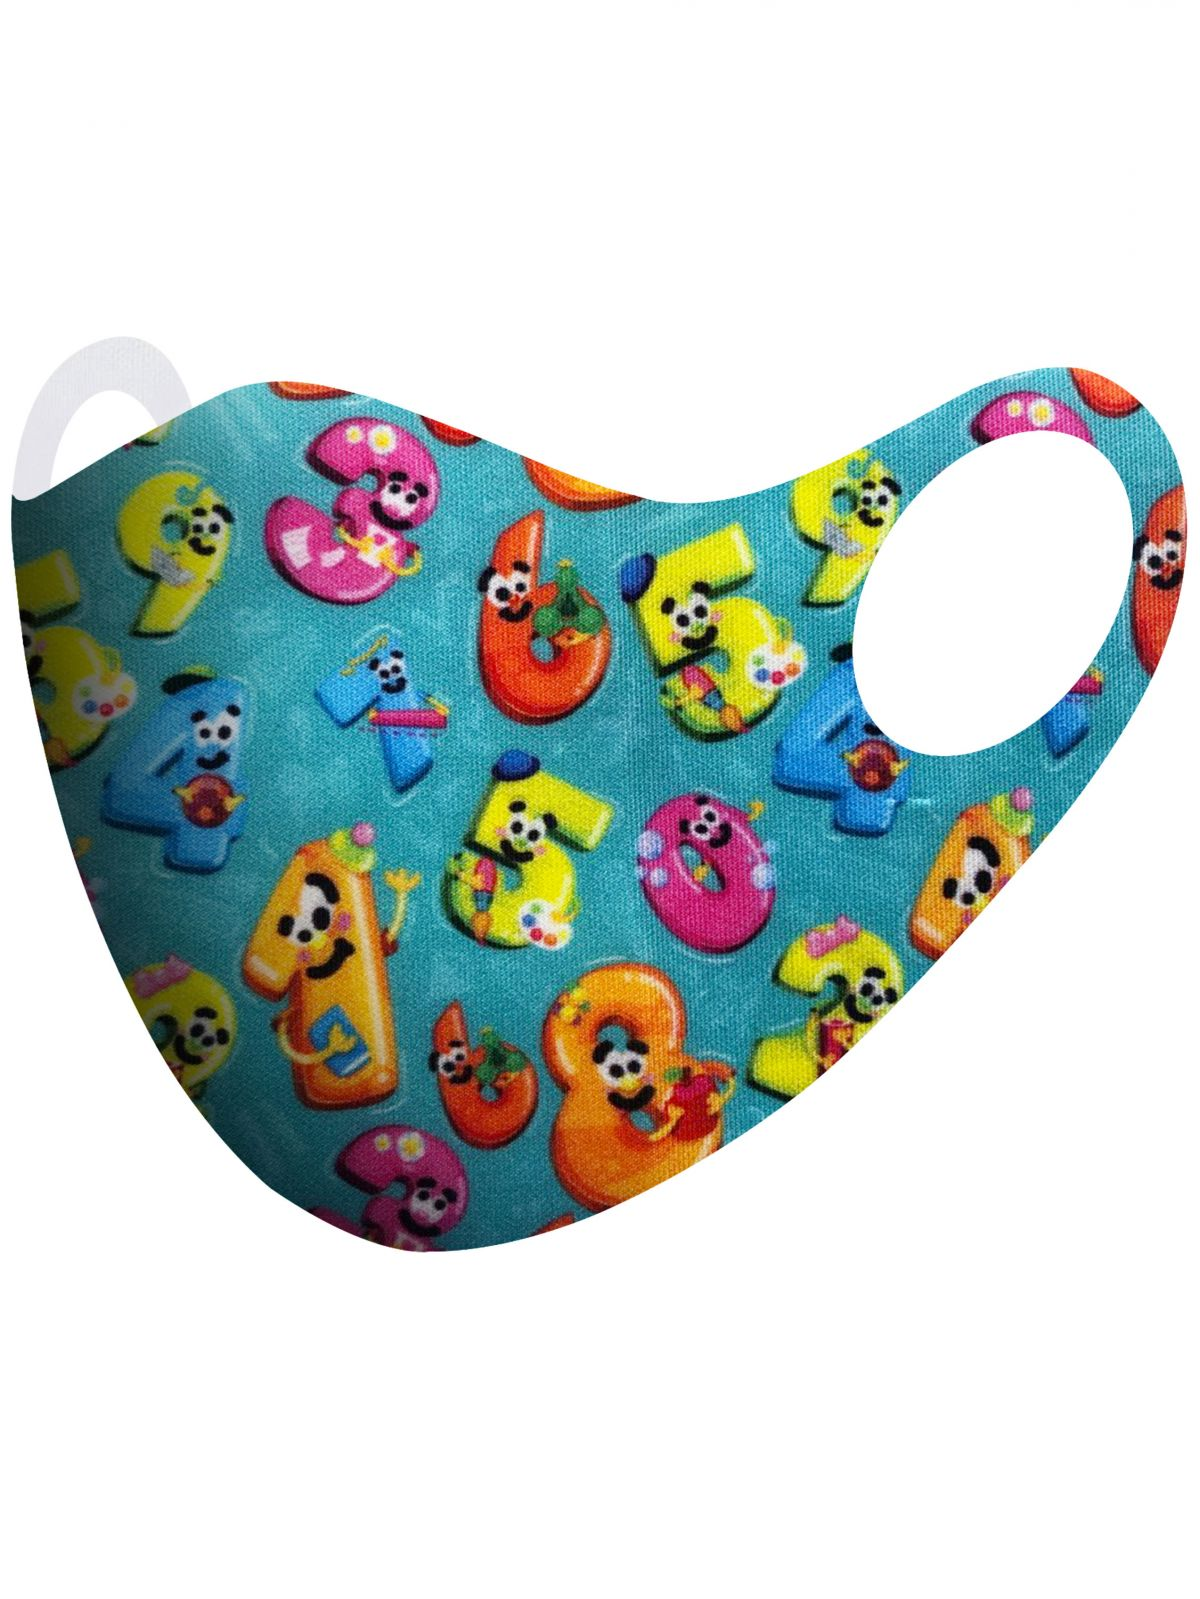 Accessories | Fun Face Mask Childrens Kids Reusable Washable Masks Mouth Nose Protection Cover